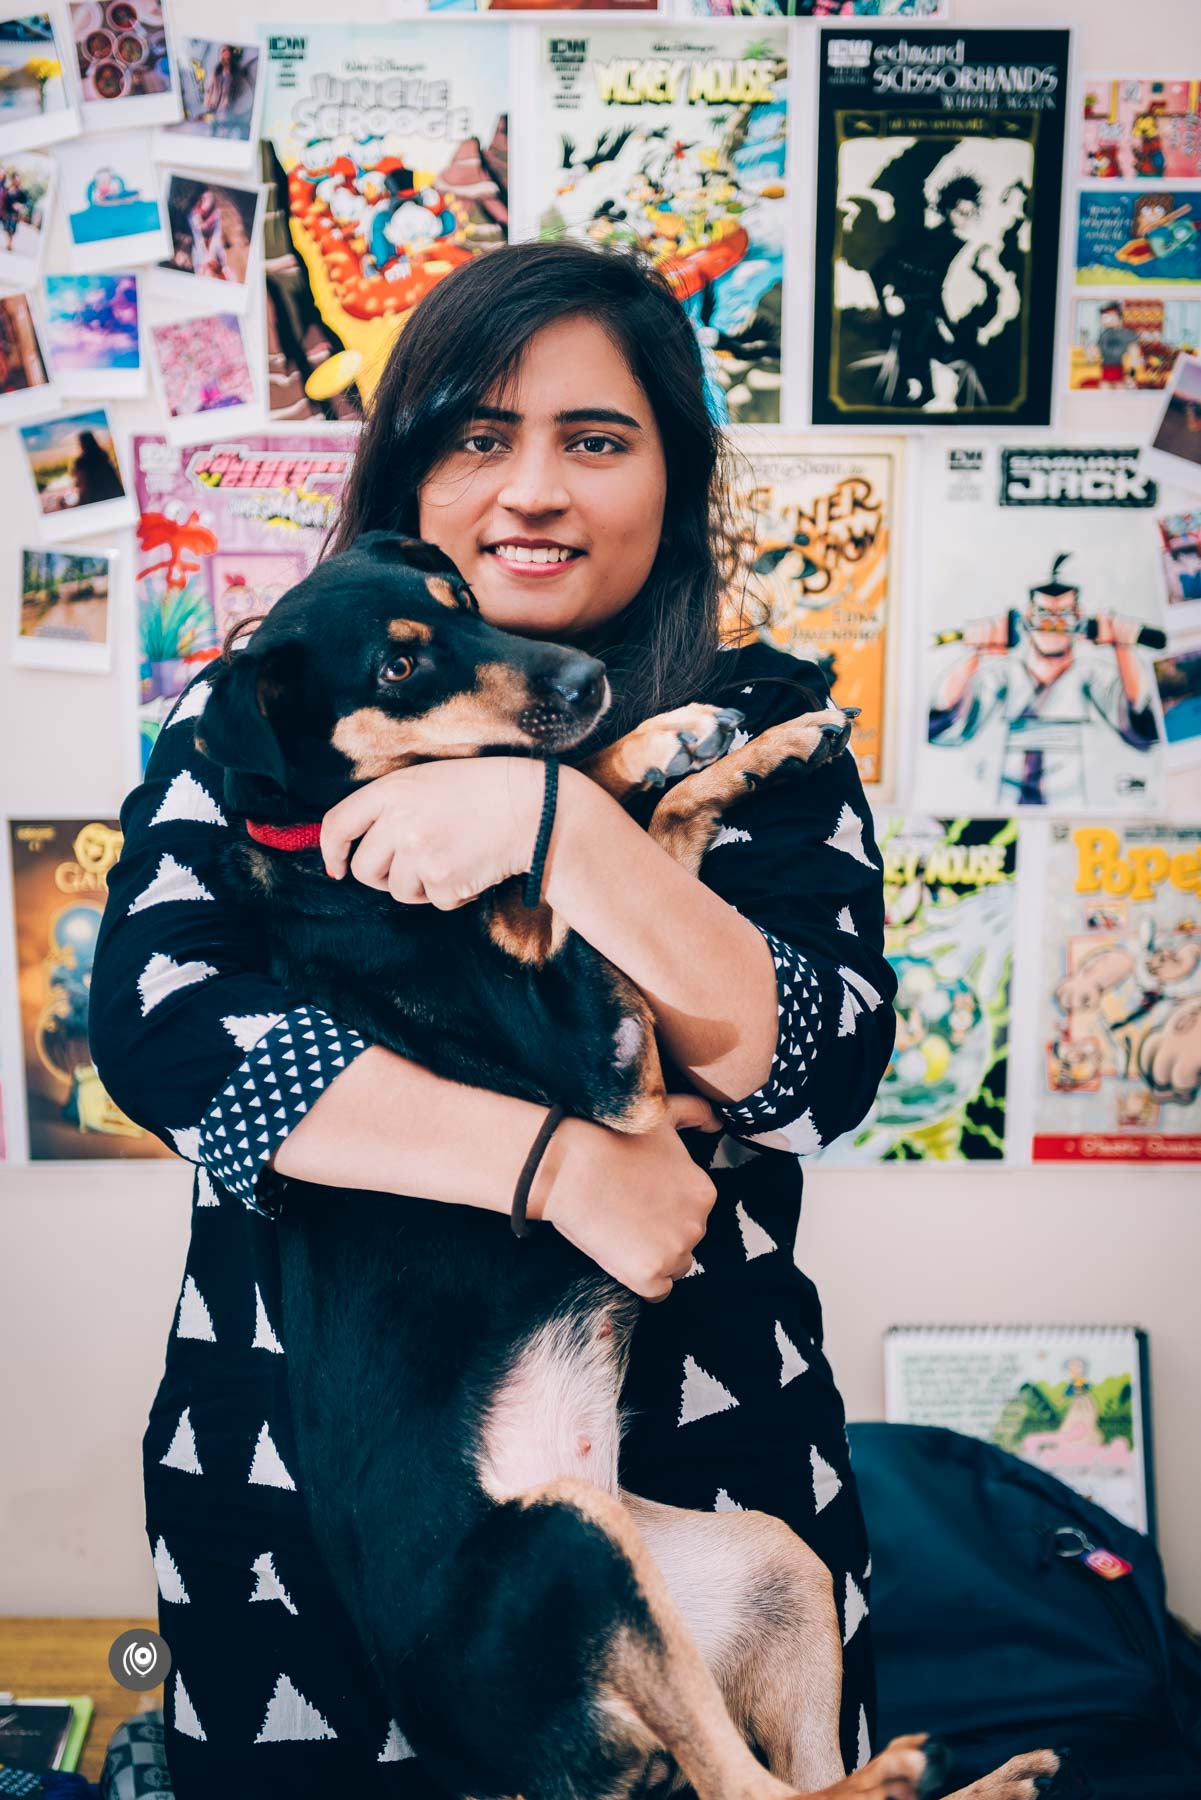 Naina Redhu, Photographer, Lifestyle Photographer, Portrait Photographer, Lifestyle Blogger, Photo Blogger, Photographer Blogger, Neha Sharma, Neha Doodles, Doodler, Illustrator, Graphic Designer, Minty, Home, A Day With, #EyesForPeople, #EyesForInfluencers